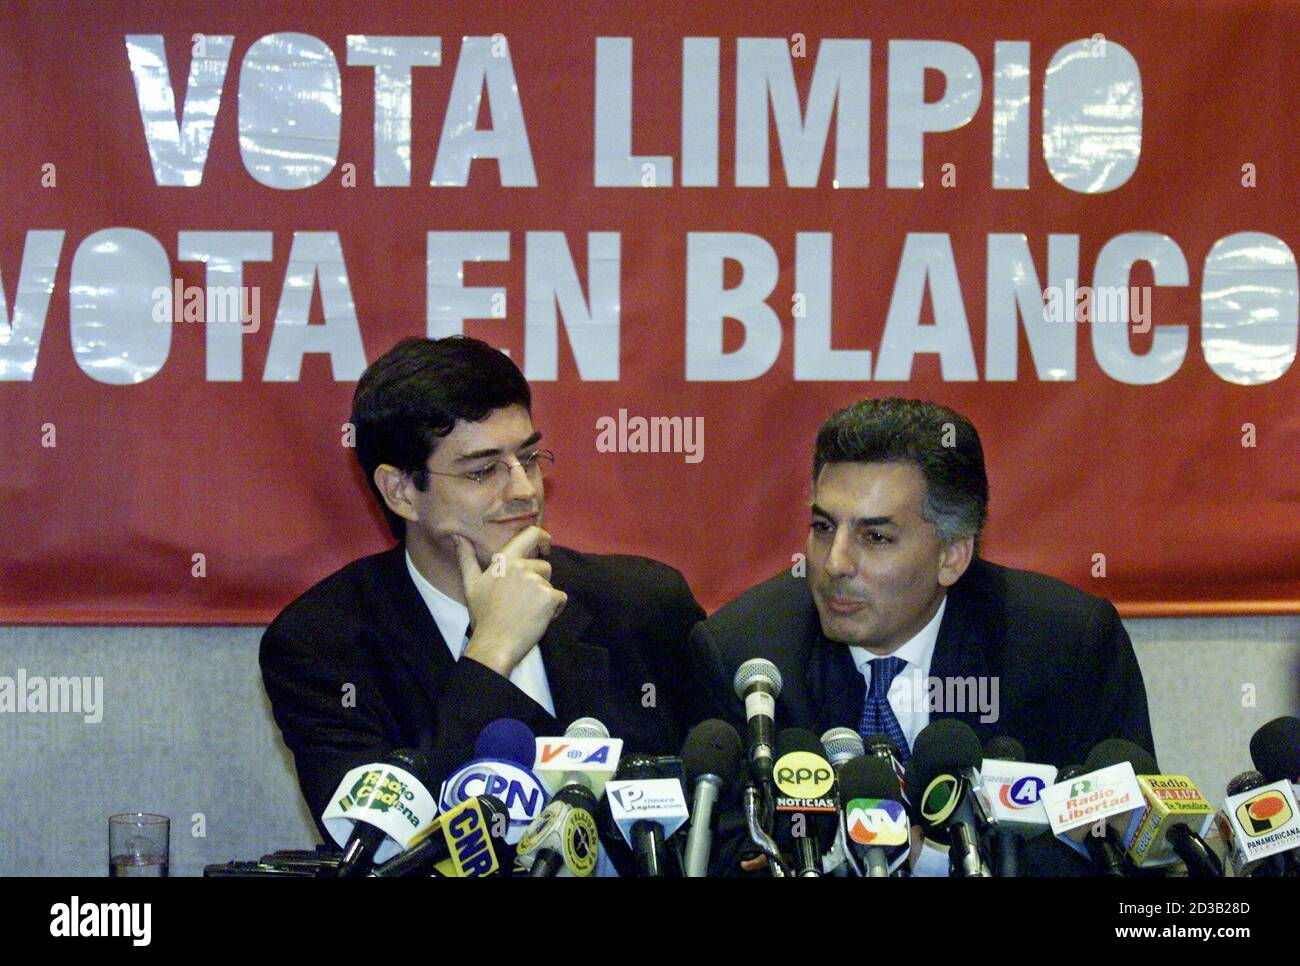 Page 3 Bayly High Resolution Stock Photography And Images Alamy Believed to cause harm, disease, and even death, one of mankind's most terrifying battles is against the unknown and the unseen. https www alamy com two of perus best known novelists jaime bayly l and alvaro vargas llosa sit in front of a poster saying vote clean abstain in lima april 25 2001 urging voters to throw out their ballots in a runoff election likely to be held on june 3 saying neither centrist candidate alejandro toledo nor leftist ex president alan garcia can be trusted vargas llosa a former adviser to toledo broke ranks at the weekend saying toledo lied and lacked credibility pohb image380715341 html